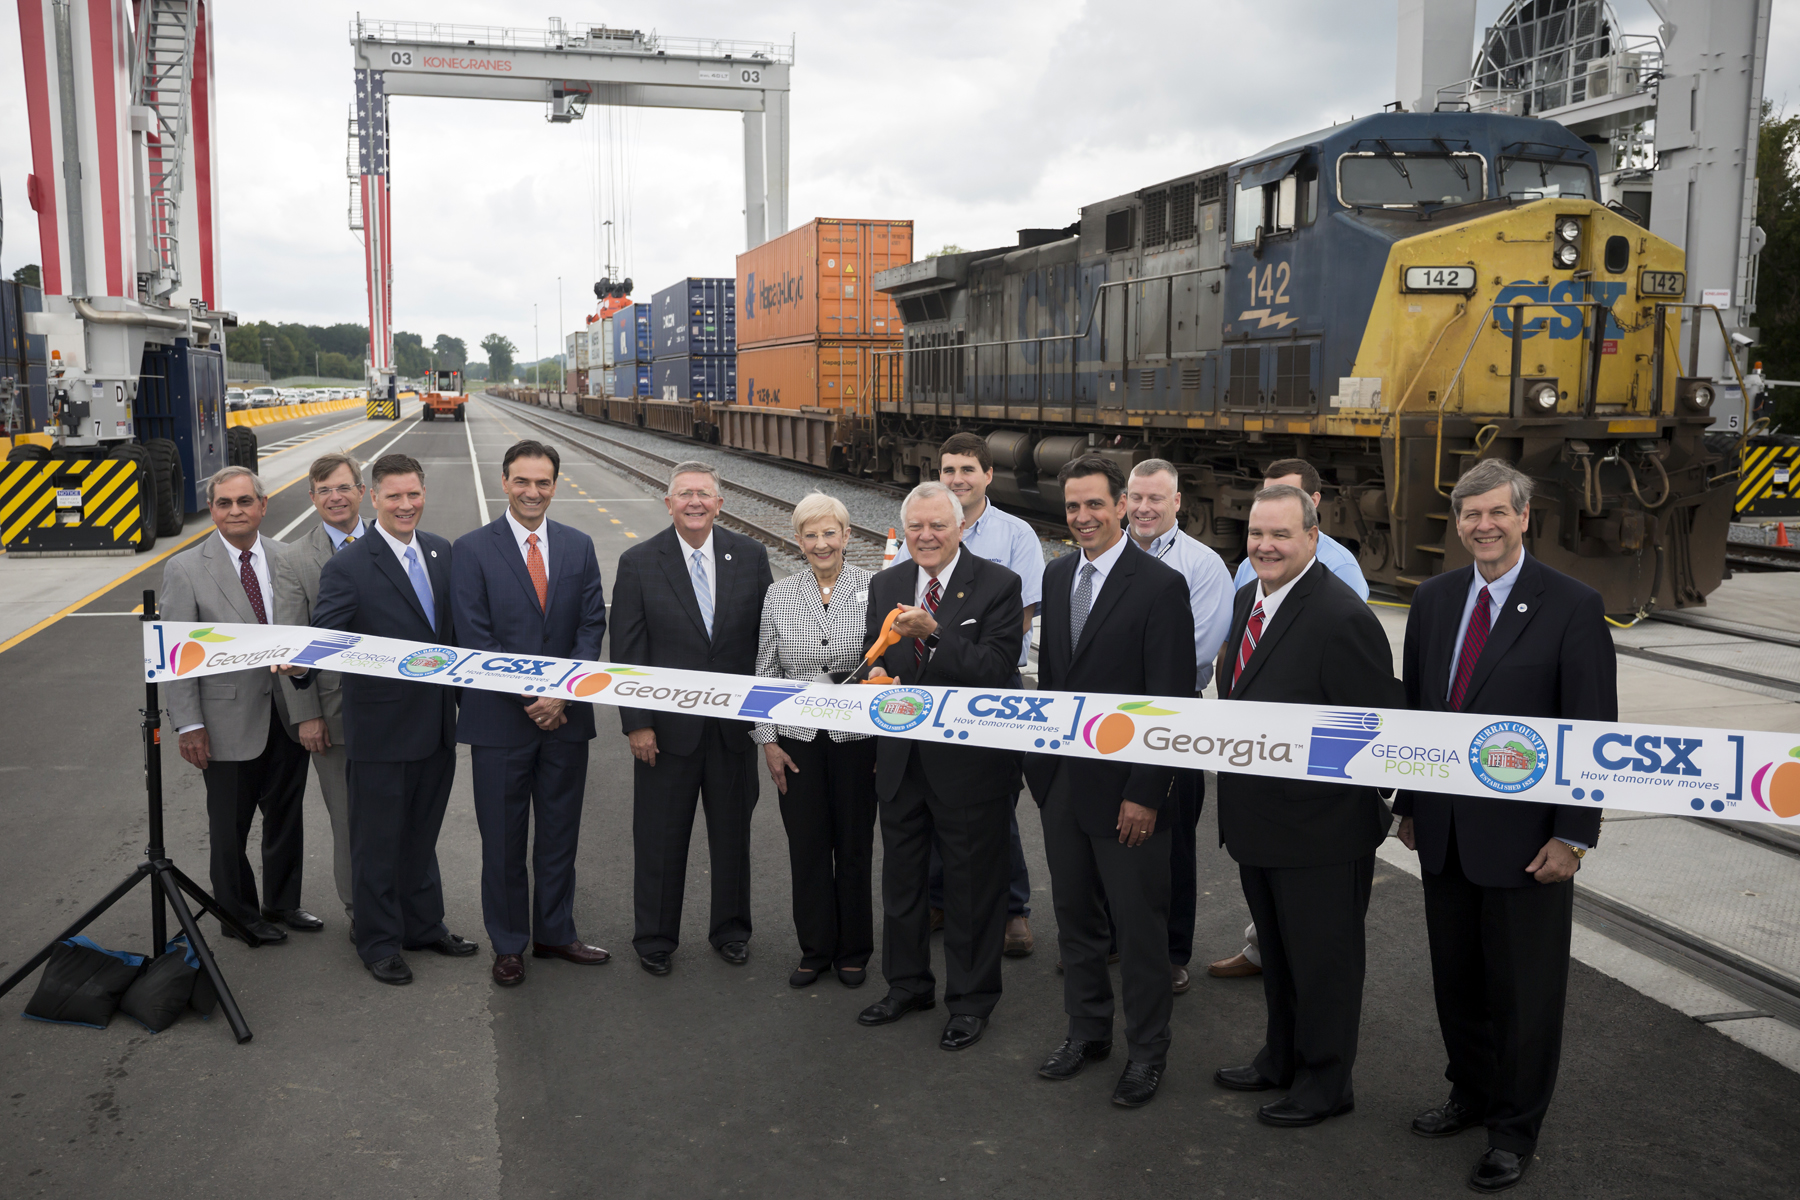 Gov. Nathan Deal, center, cuts a ribbon during the Grand Opening of the Appalachian Regional Port near Chatsworth, Ga., Wednesday, Aug. 22, 2018. Improved rail access to the area has led to increased interest from manufacturers and logistics services. The inland terminal will be operated by the Georgia Ports Authority and served by CSX. Find print quality images  here . Learn more about the Appalachian Regional Port  here.  (Georgia Ports Authority / Stephen B. Morton)